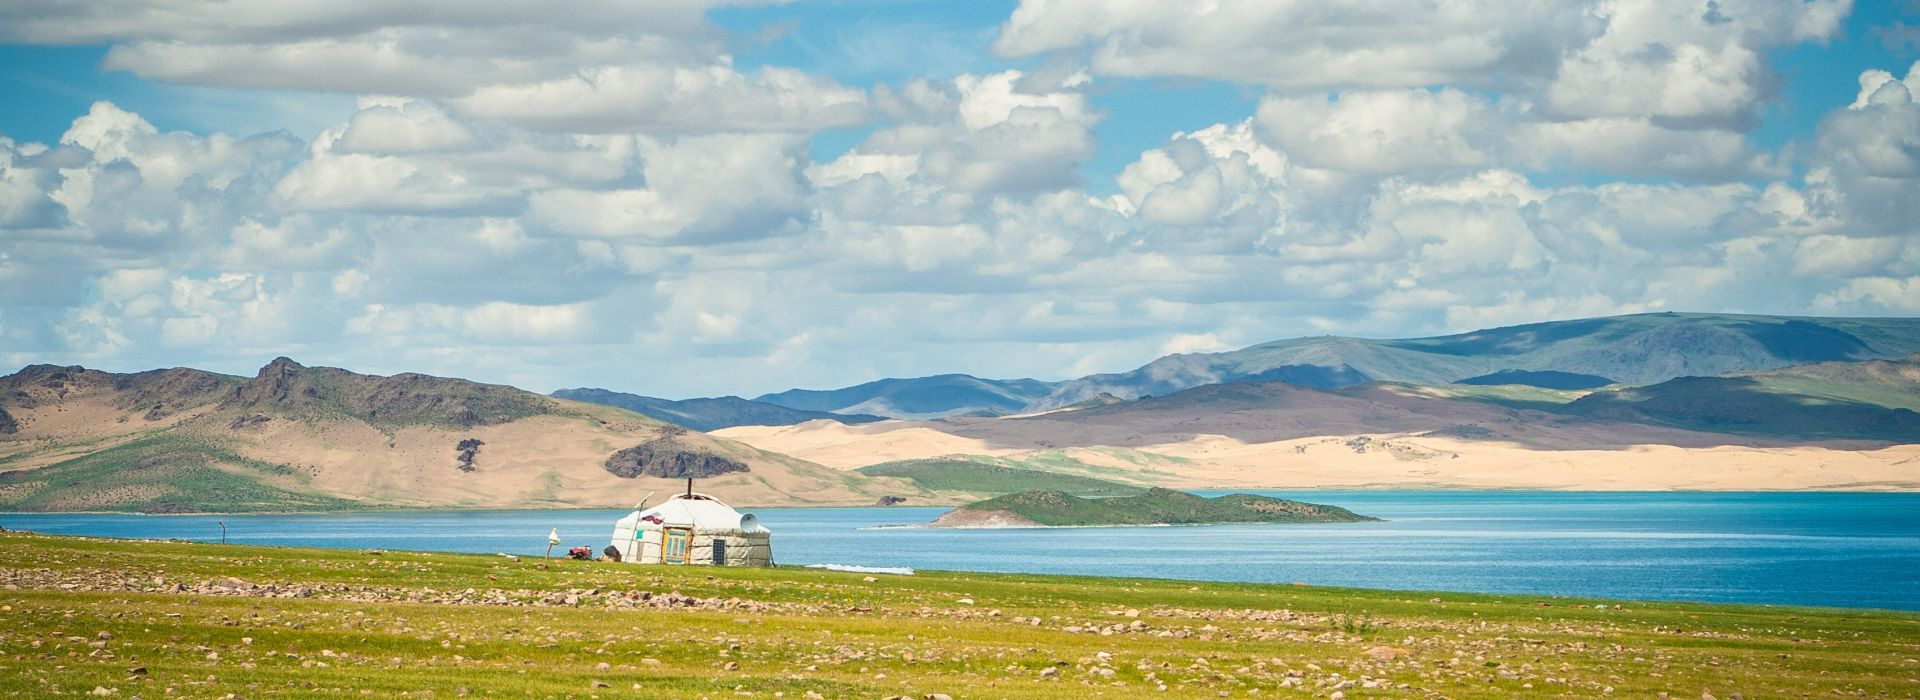 Camping Tours in Mongolia